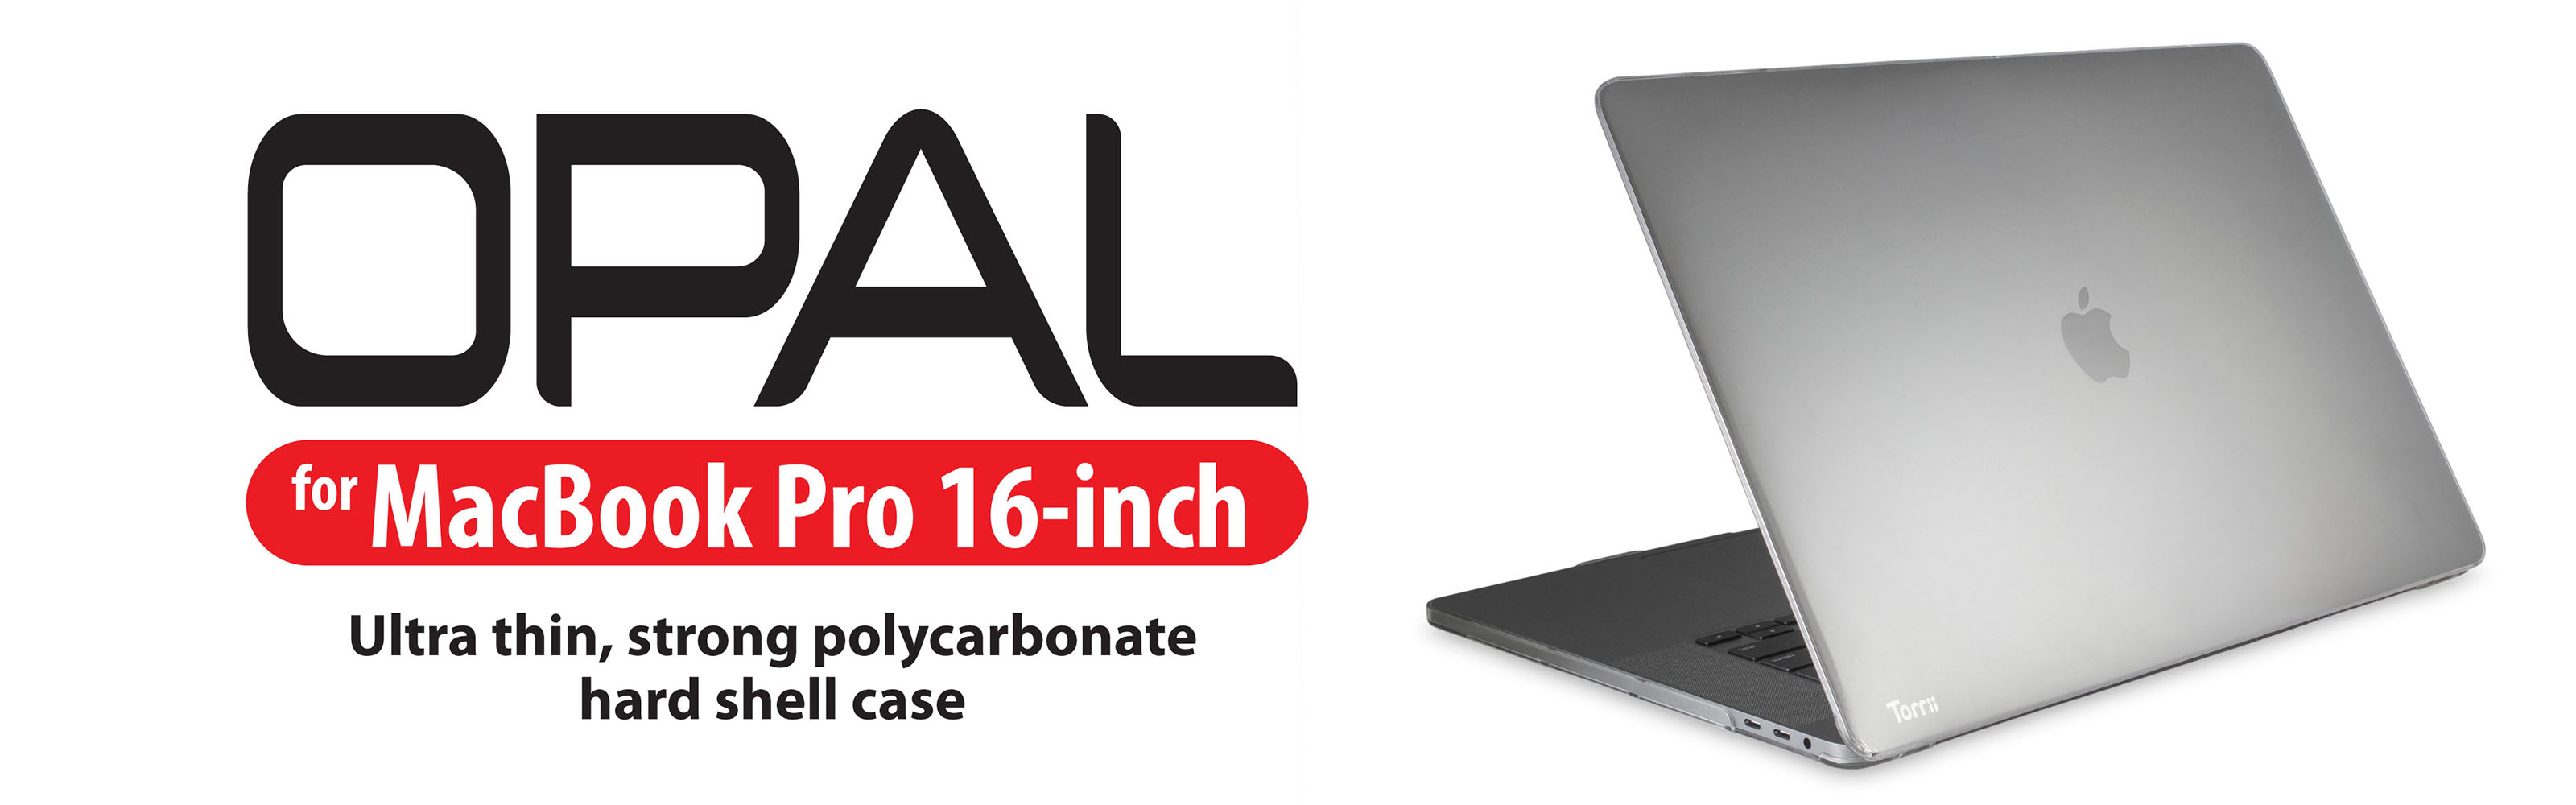 Torrii introduces OPAL for MacBook Pro 16-inch